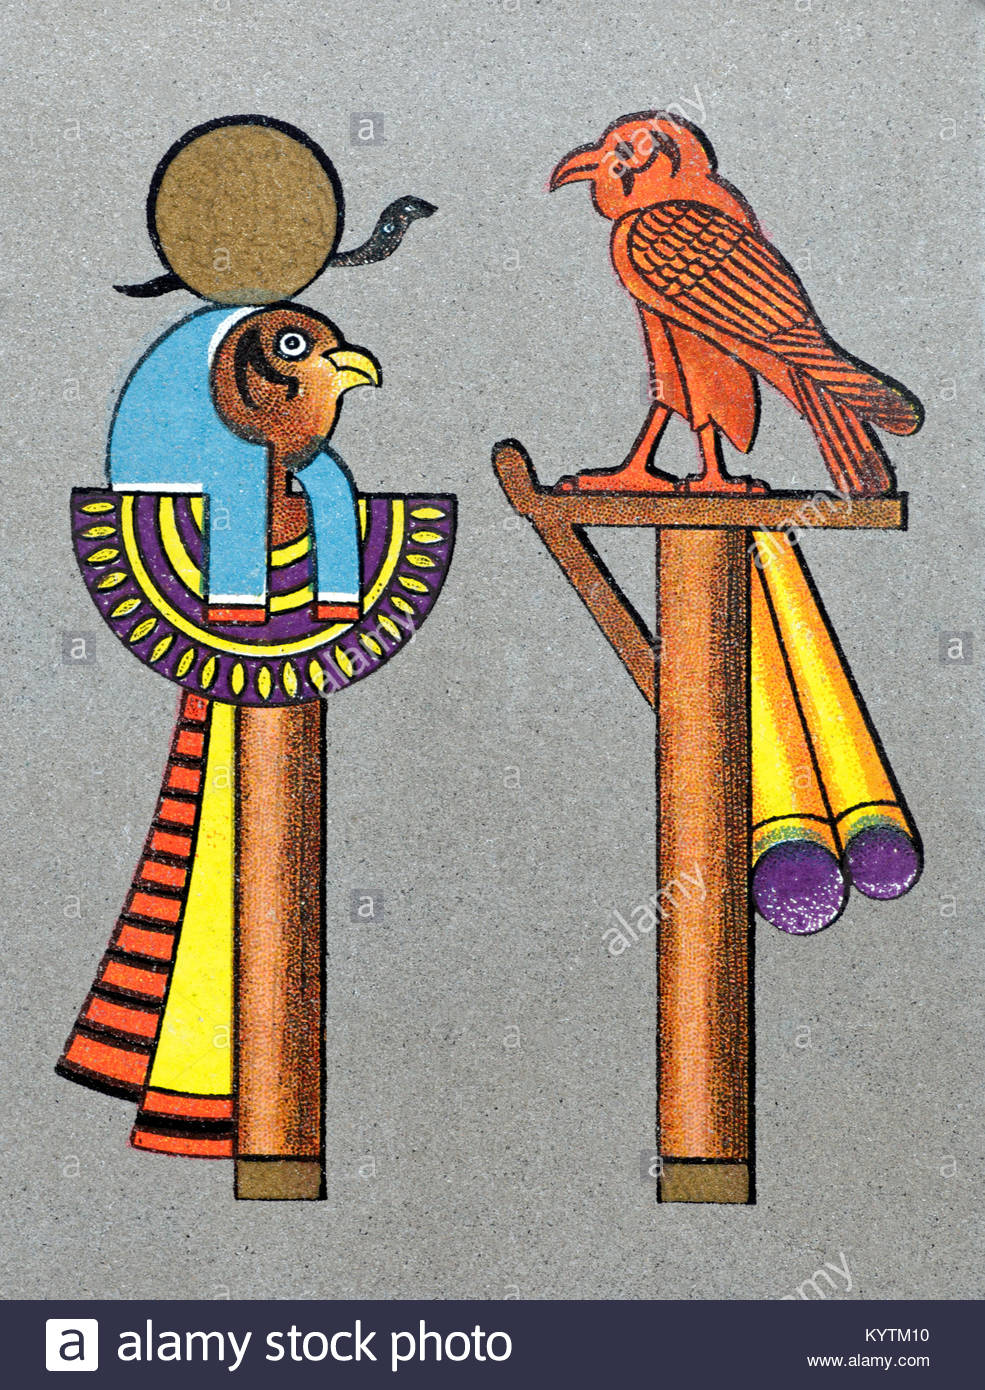 Depiction of an ancient Egyptian Army standard - Stock Image